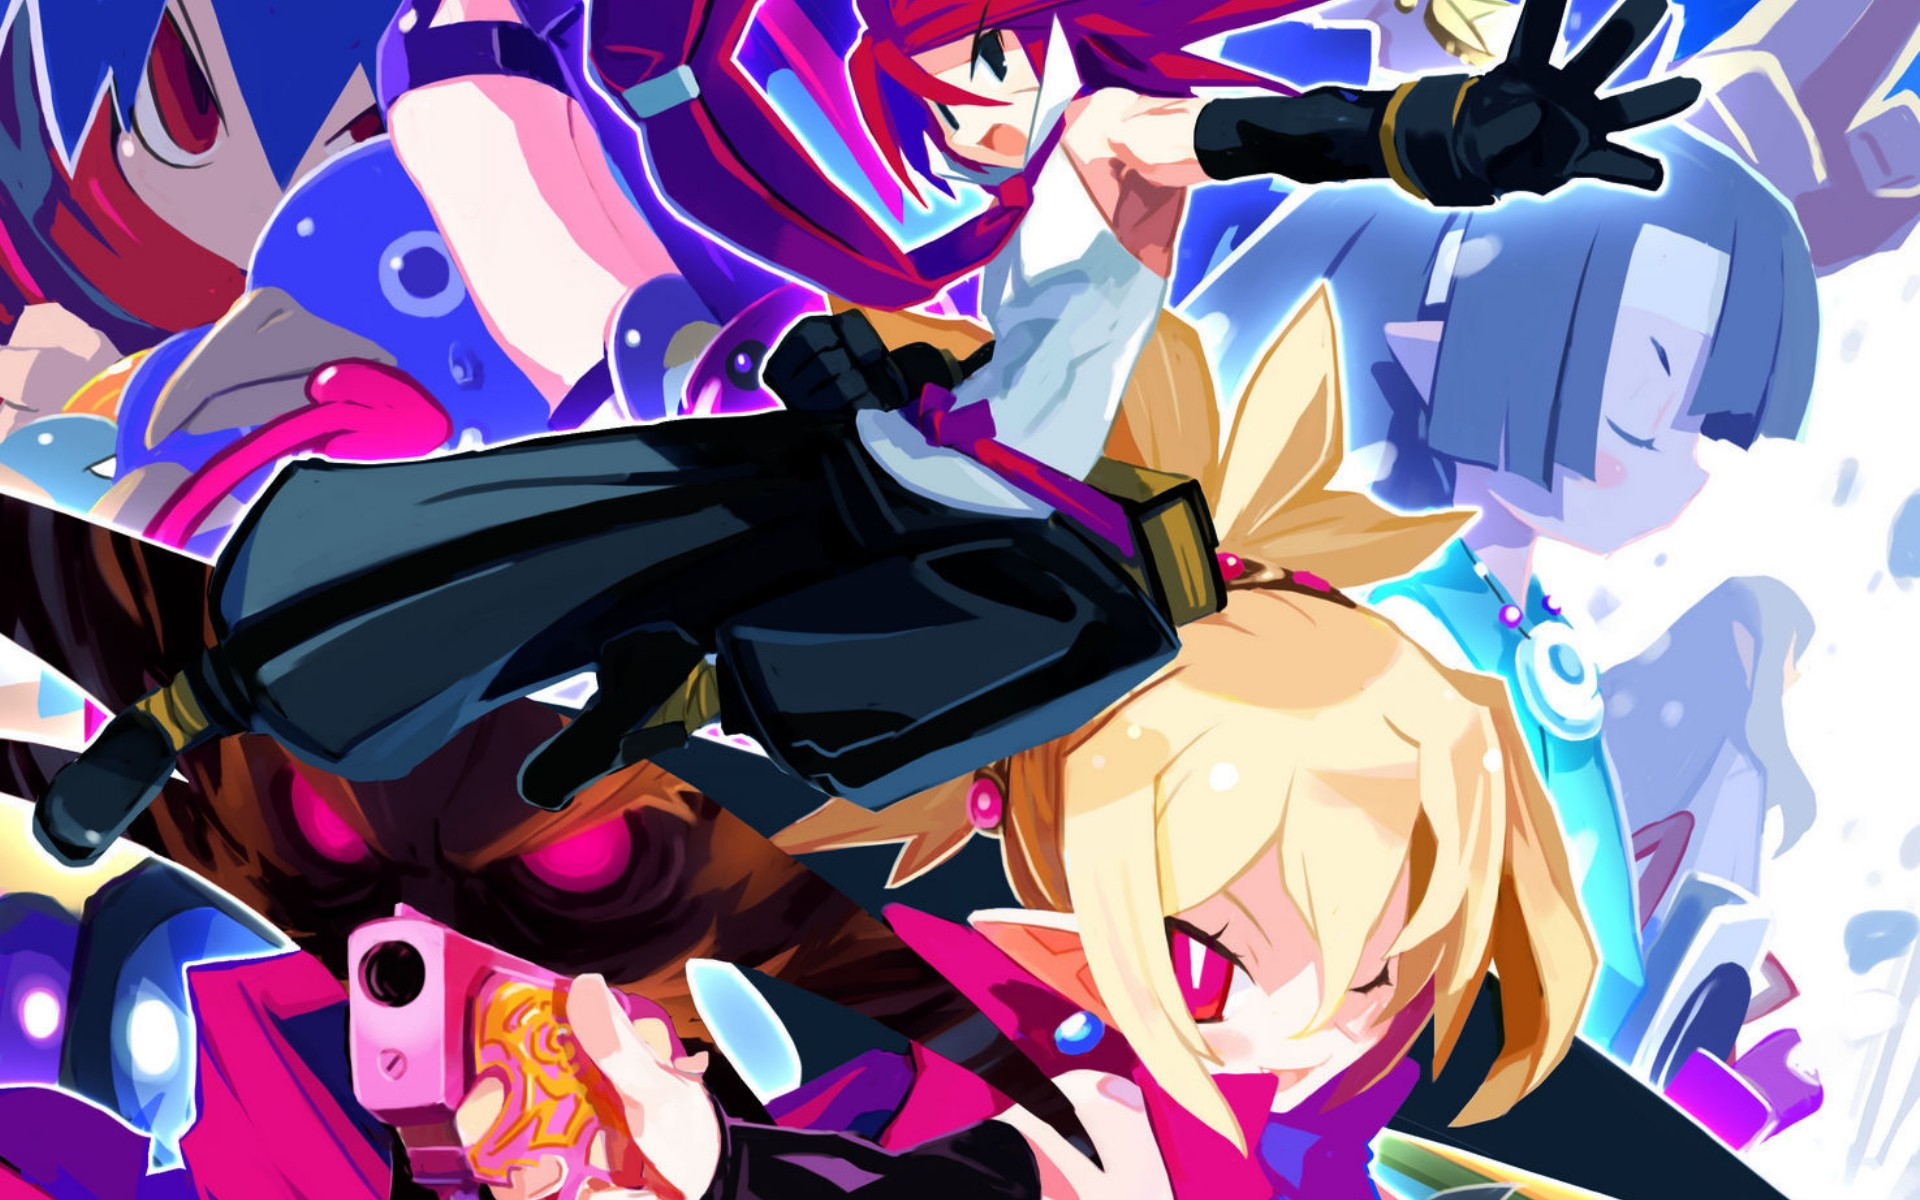 Iphone X Wallpaper Official Download Disgaea Hd Wallpaper Background Image 1920x1200 Id